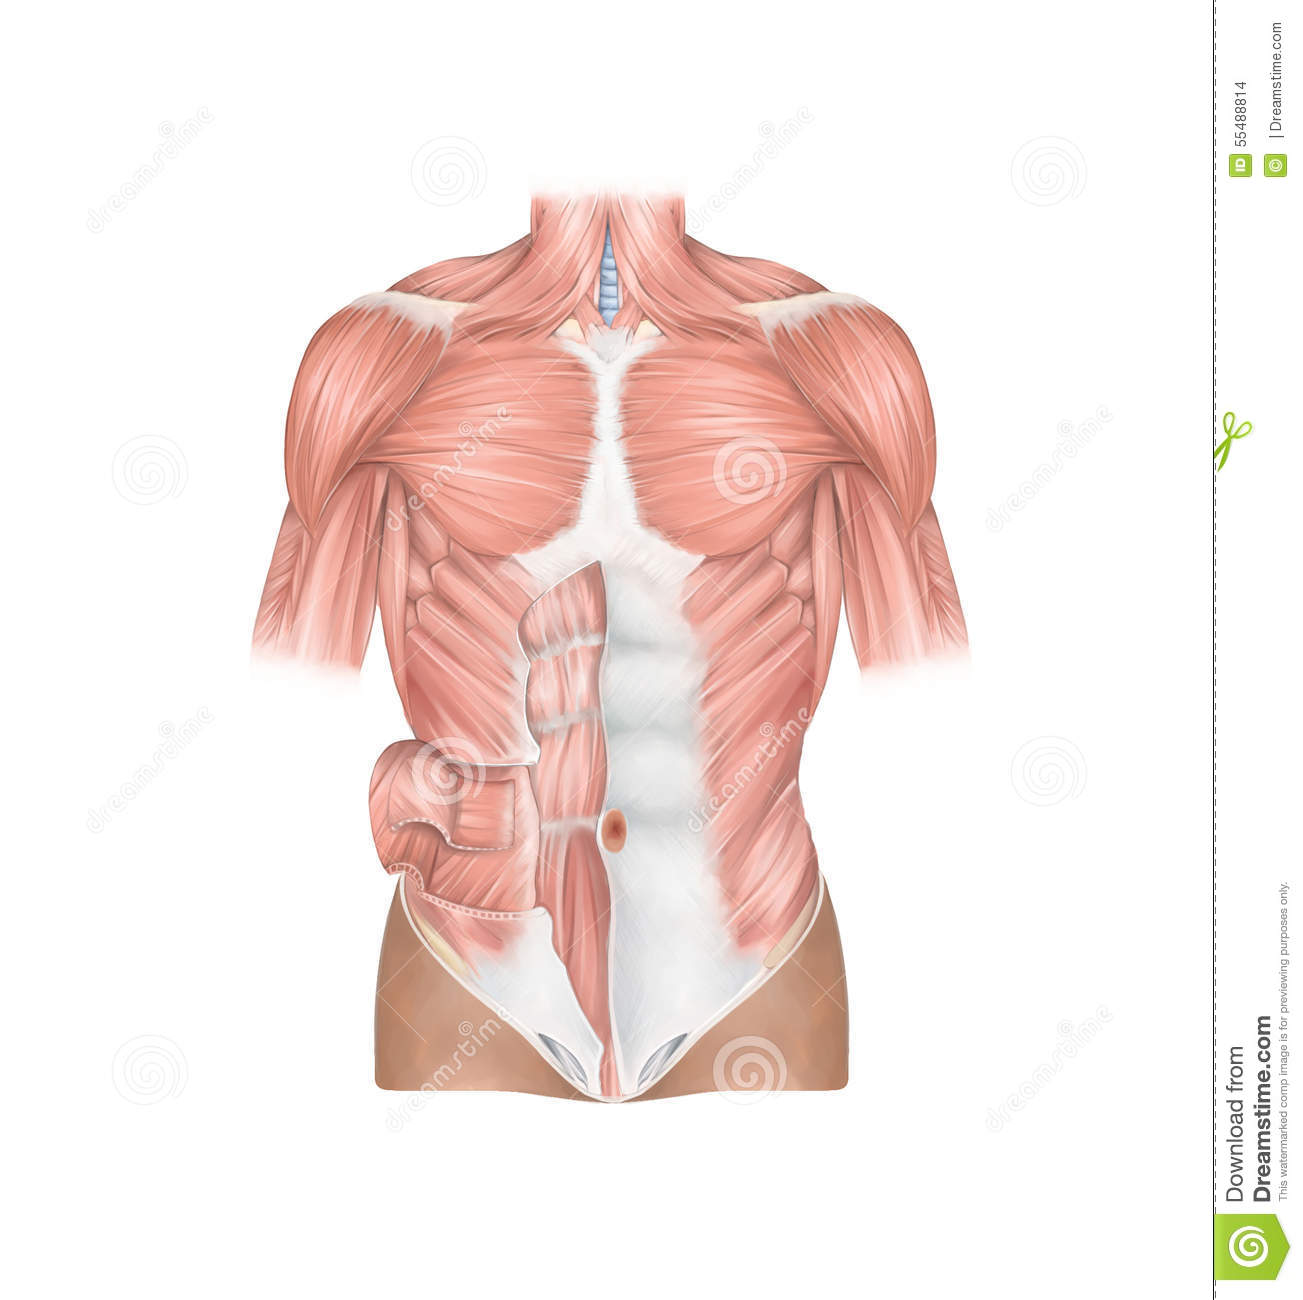 Anatomy Front View Of The Human Thoracic And Abdominal Wall Muscles